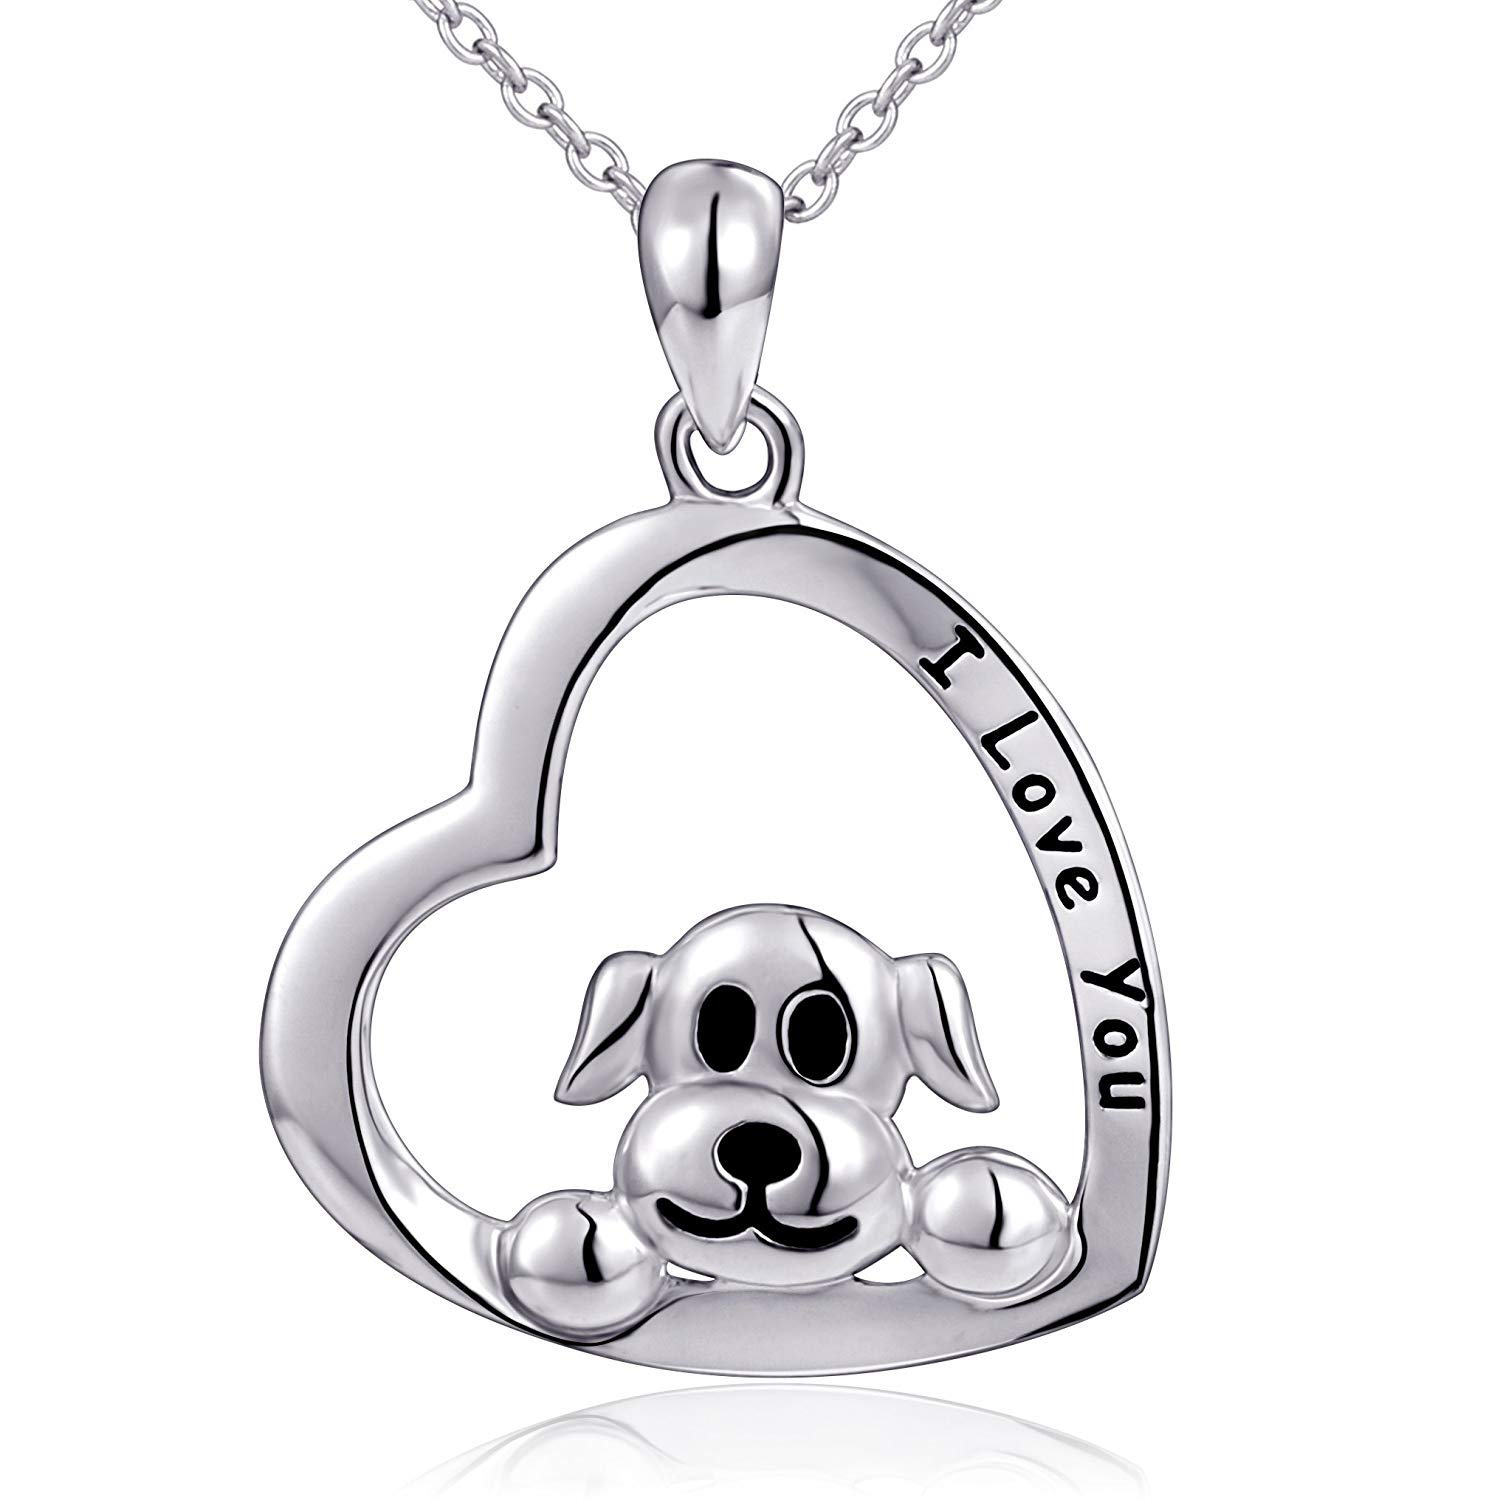 18 Mom Gifts 925 Sterling Silver I Love You Heart Dog Pendant Necklace for Women